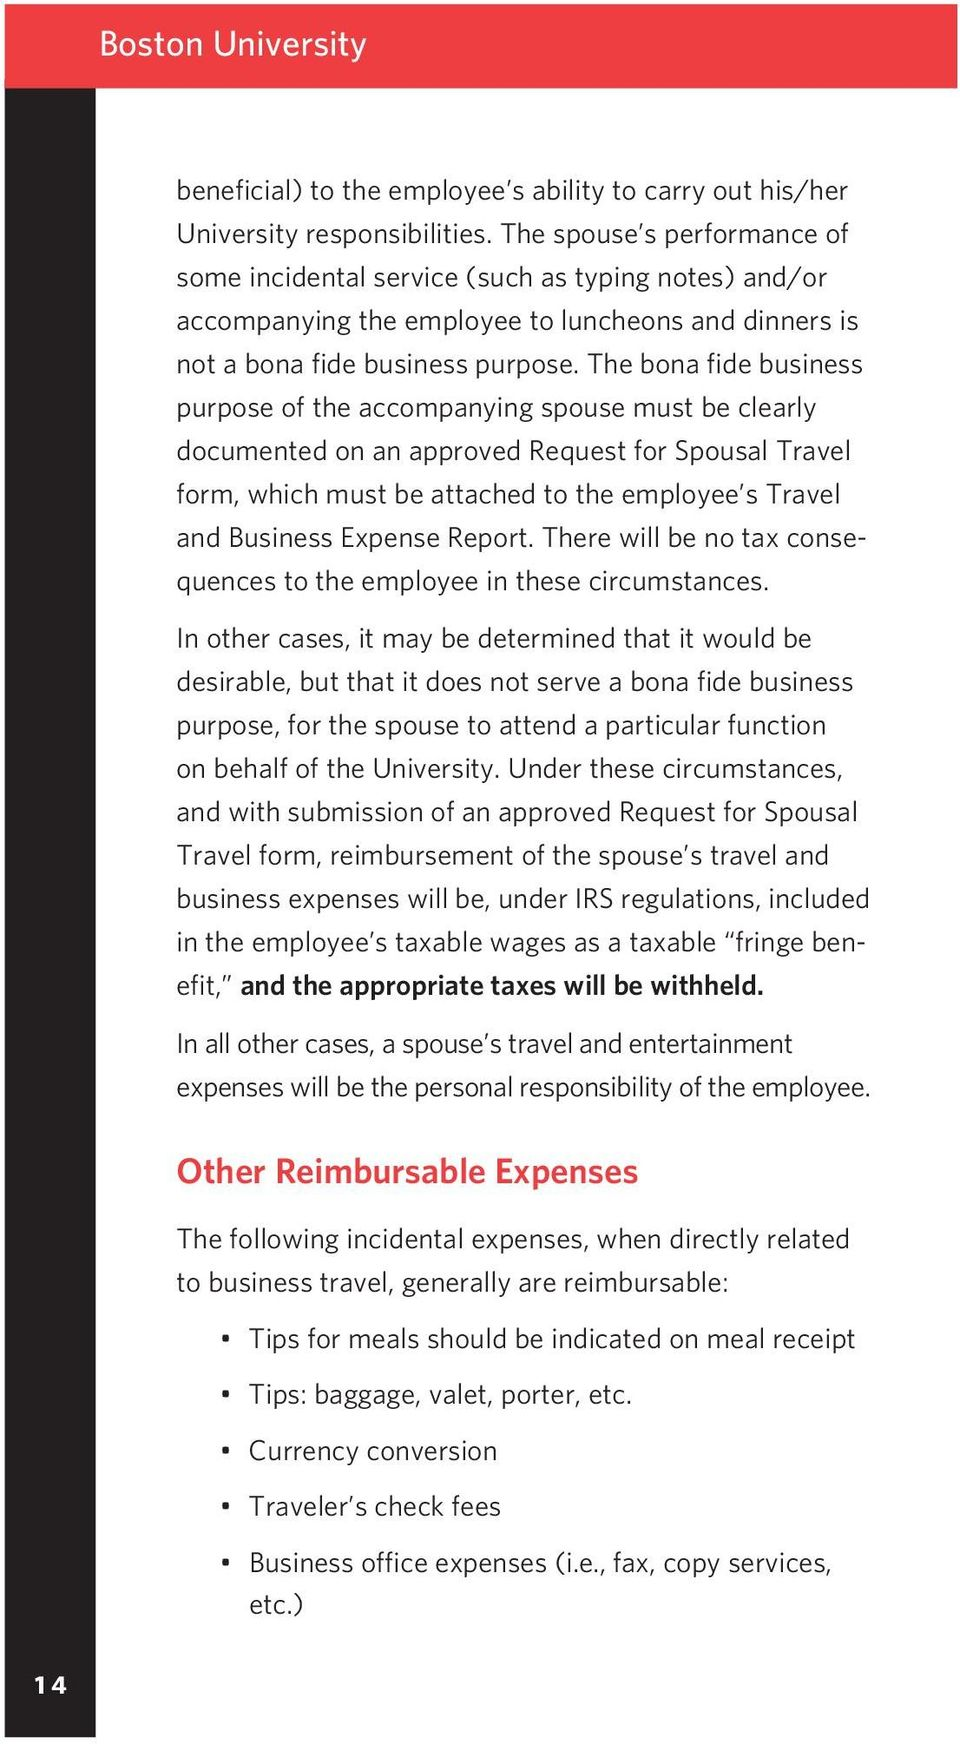 The bona fide business purpose of the accompanying spouse must be clearly documented on an approved Request for Spousal Travel form, which must be attached to the employee s Travel and Business